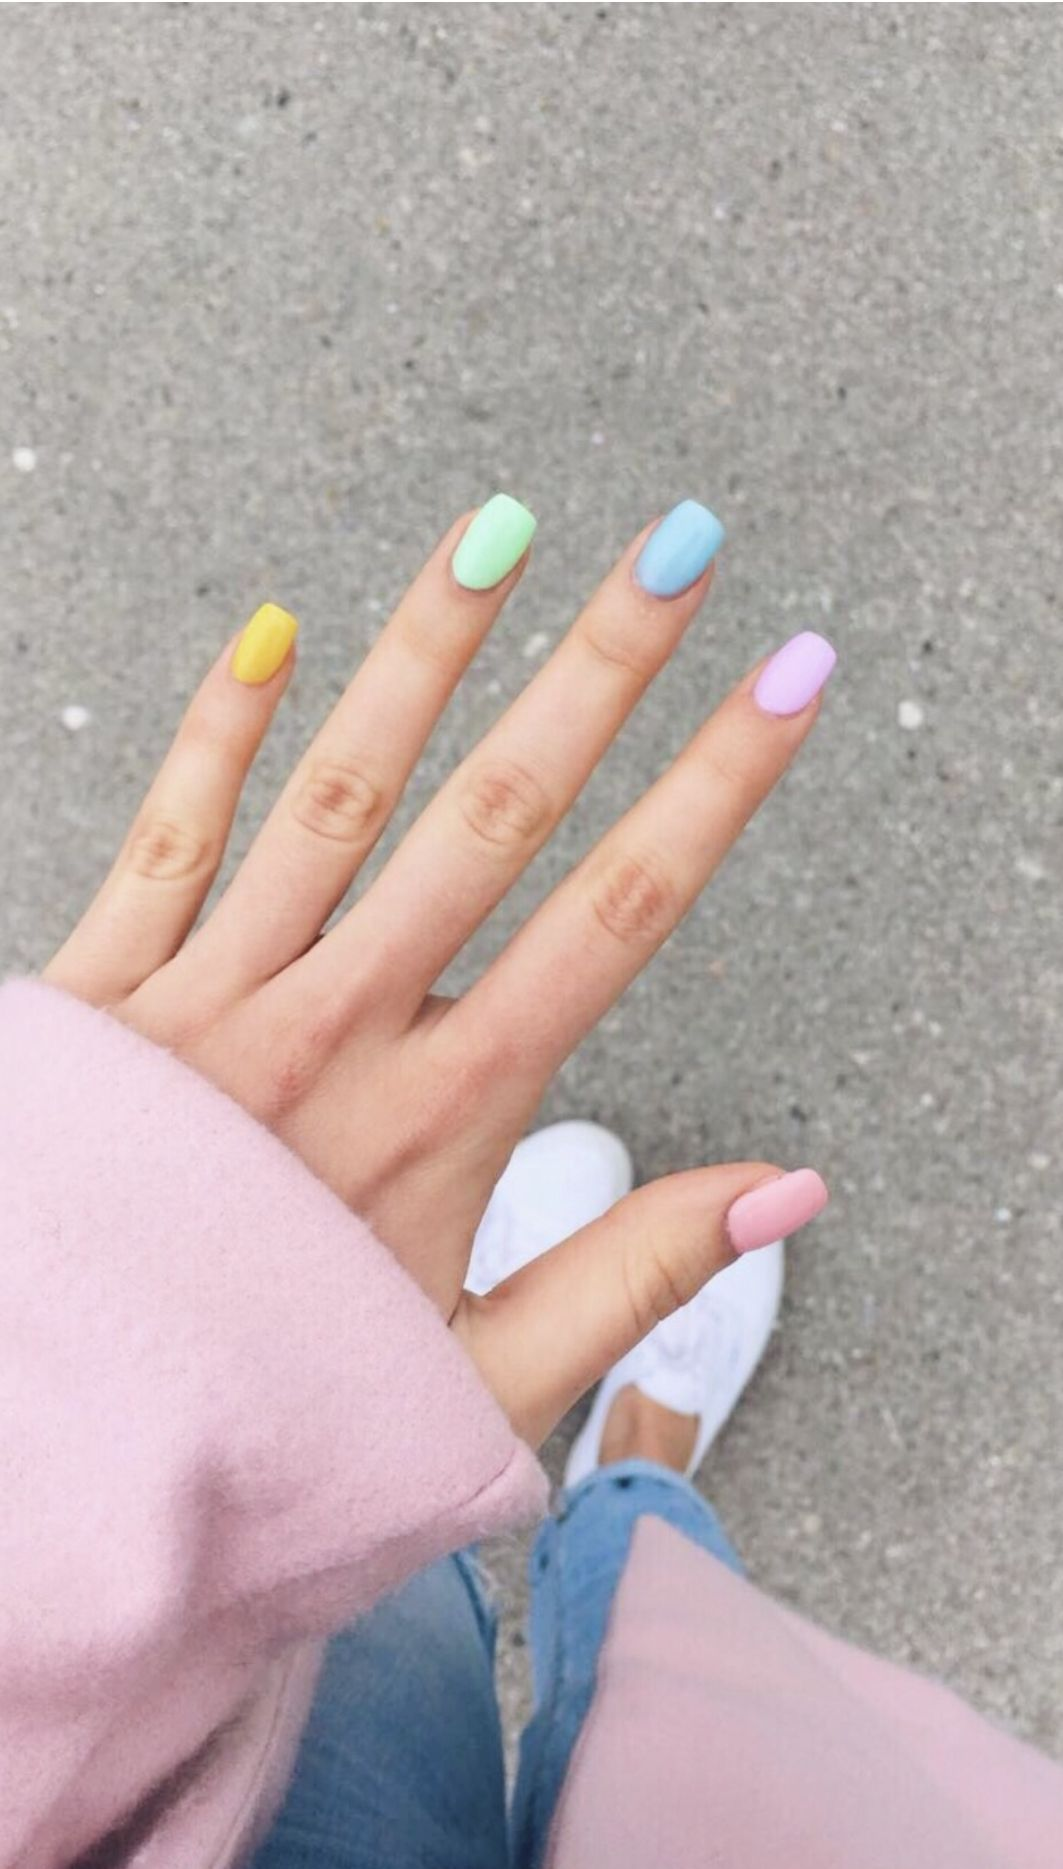 Those Are Really Pretty Colors Short Acrylic Nails Designs Short Acrylic Nails Color For Nails